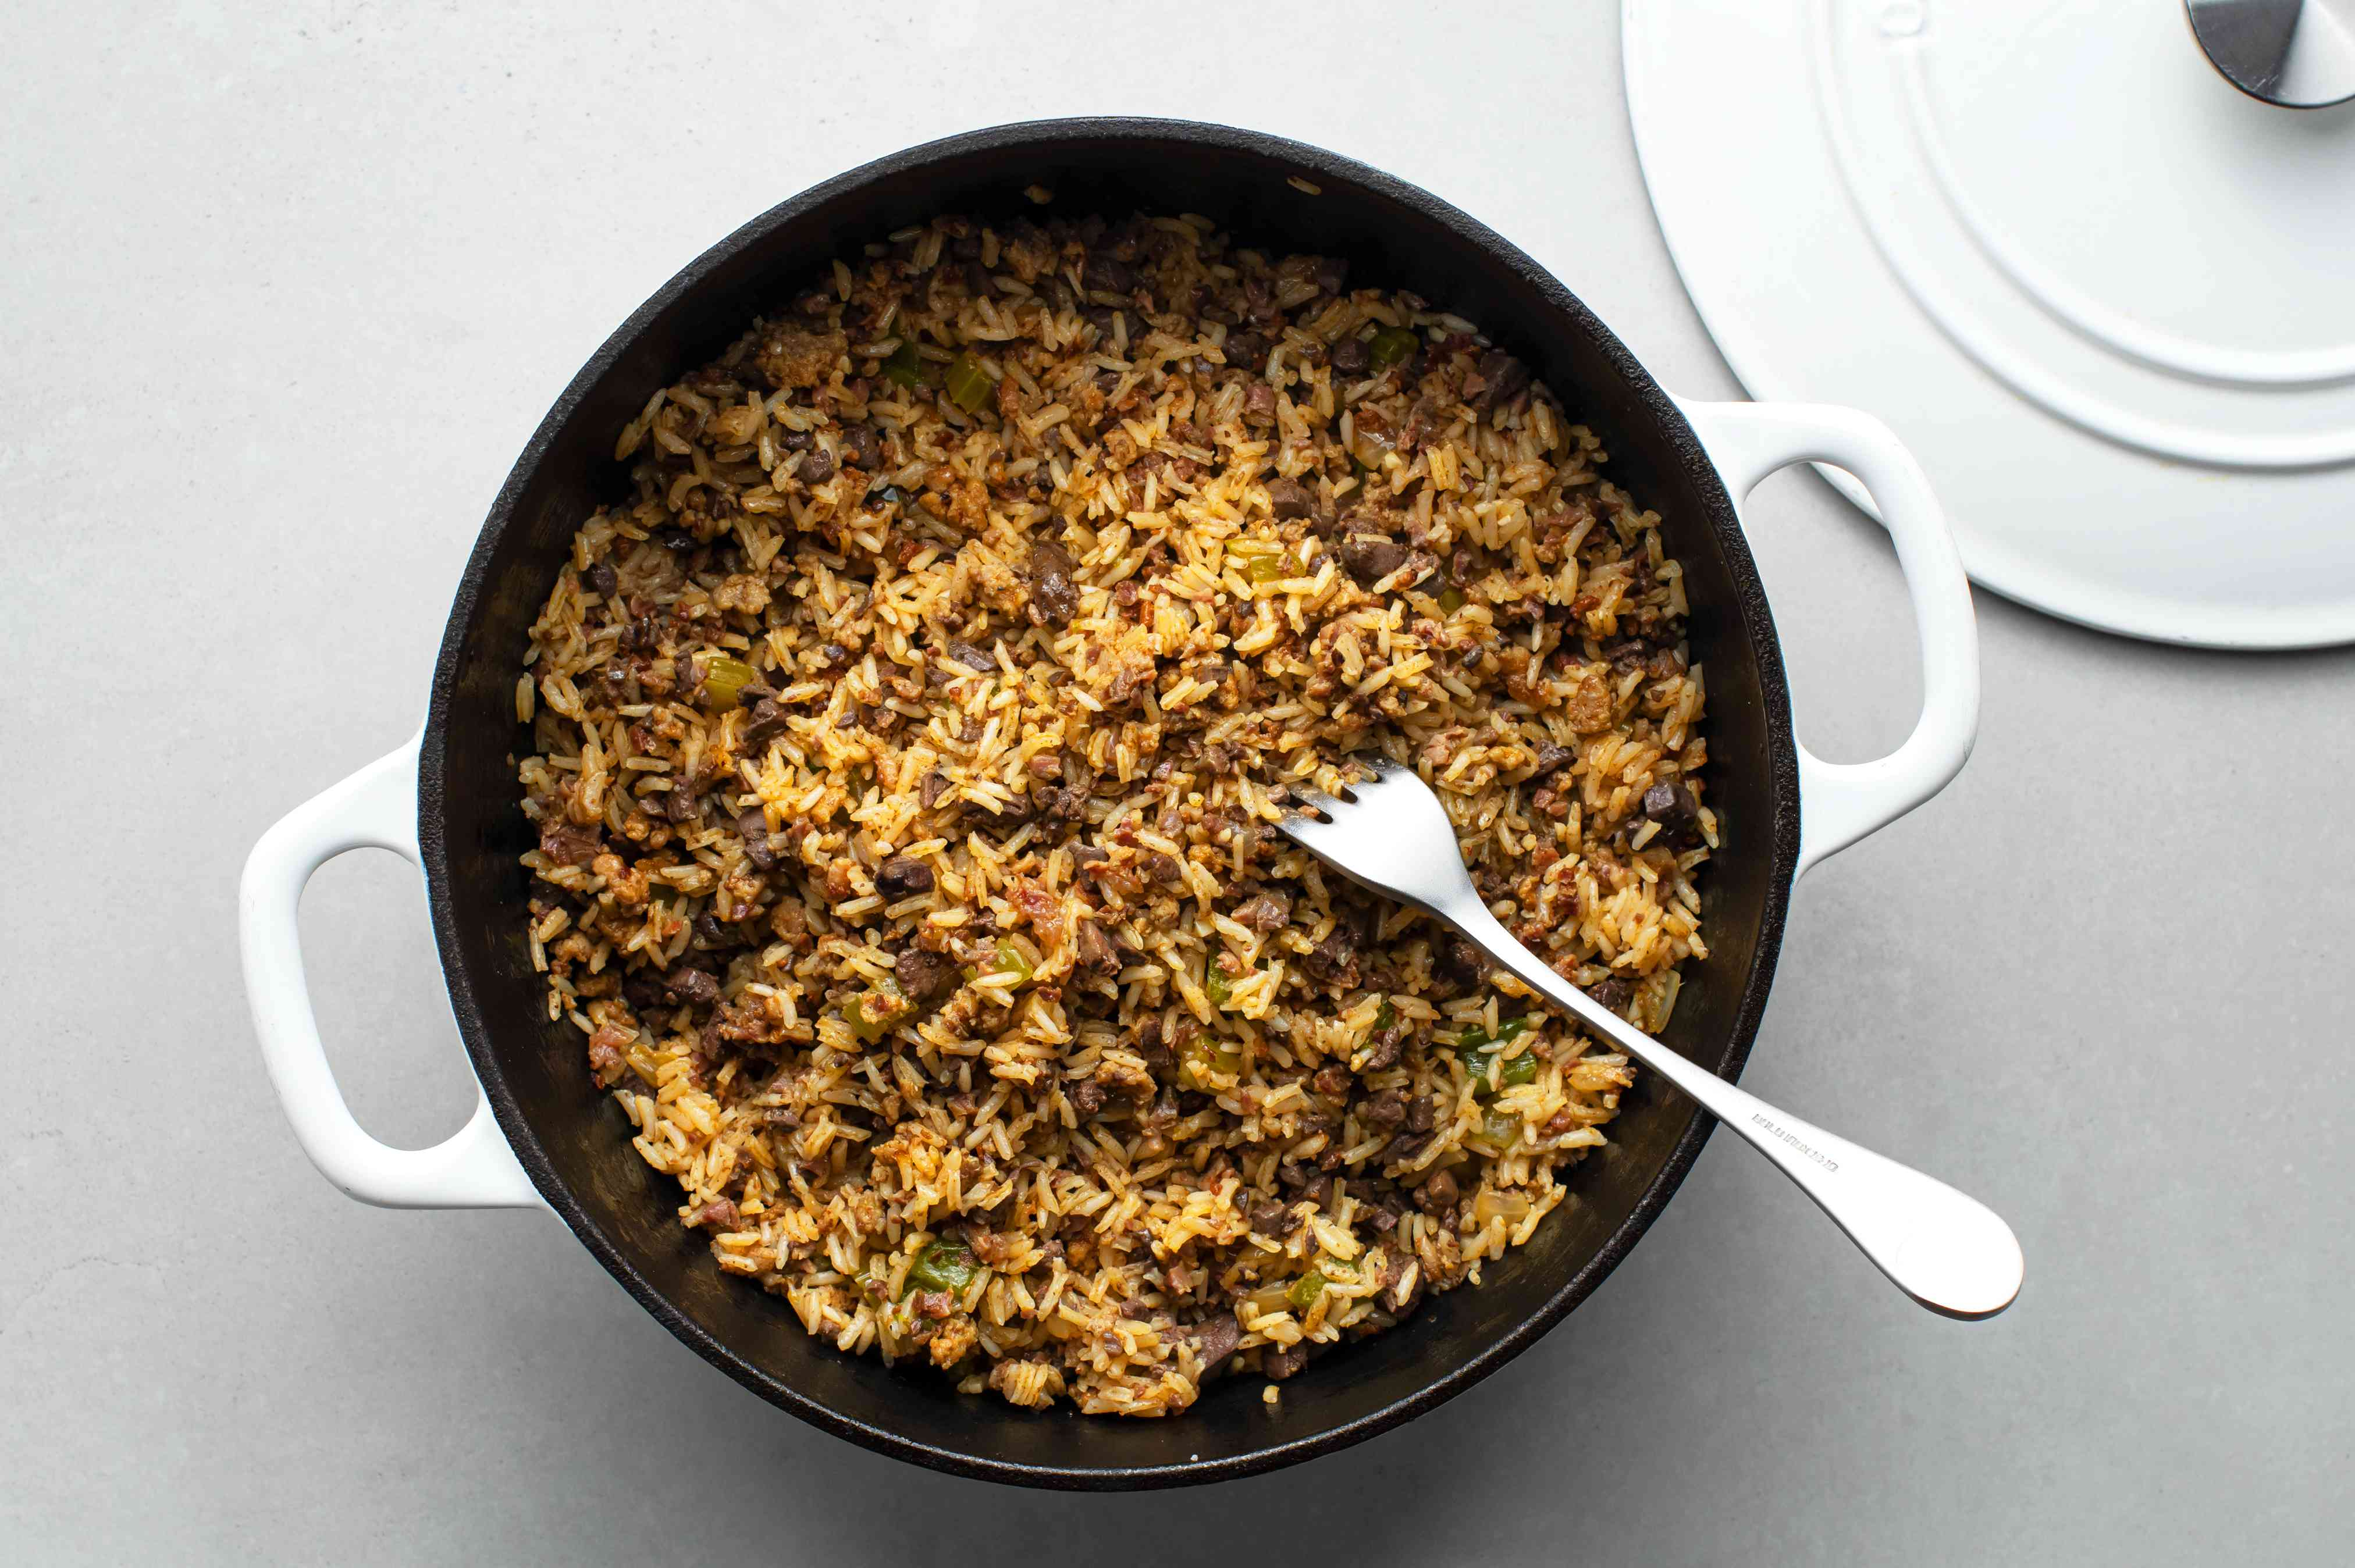 Fluff the Cajun dirty rice with a fork